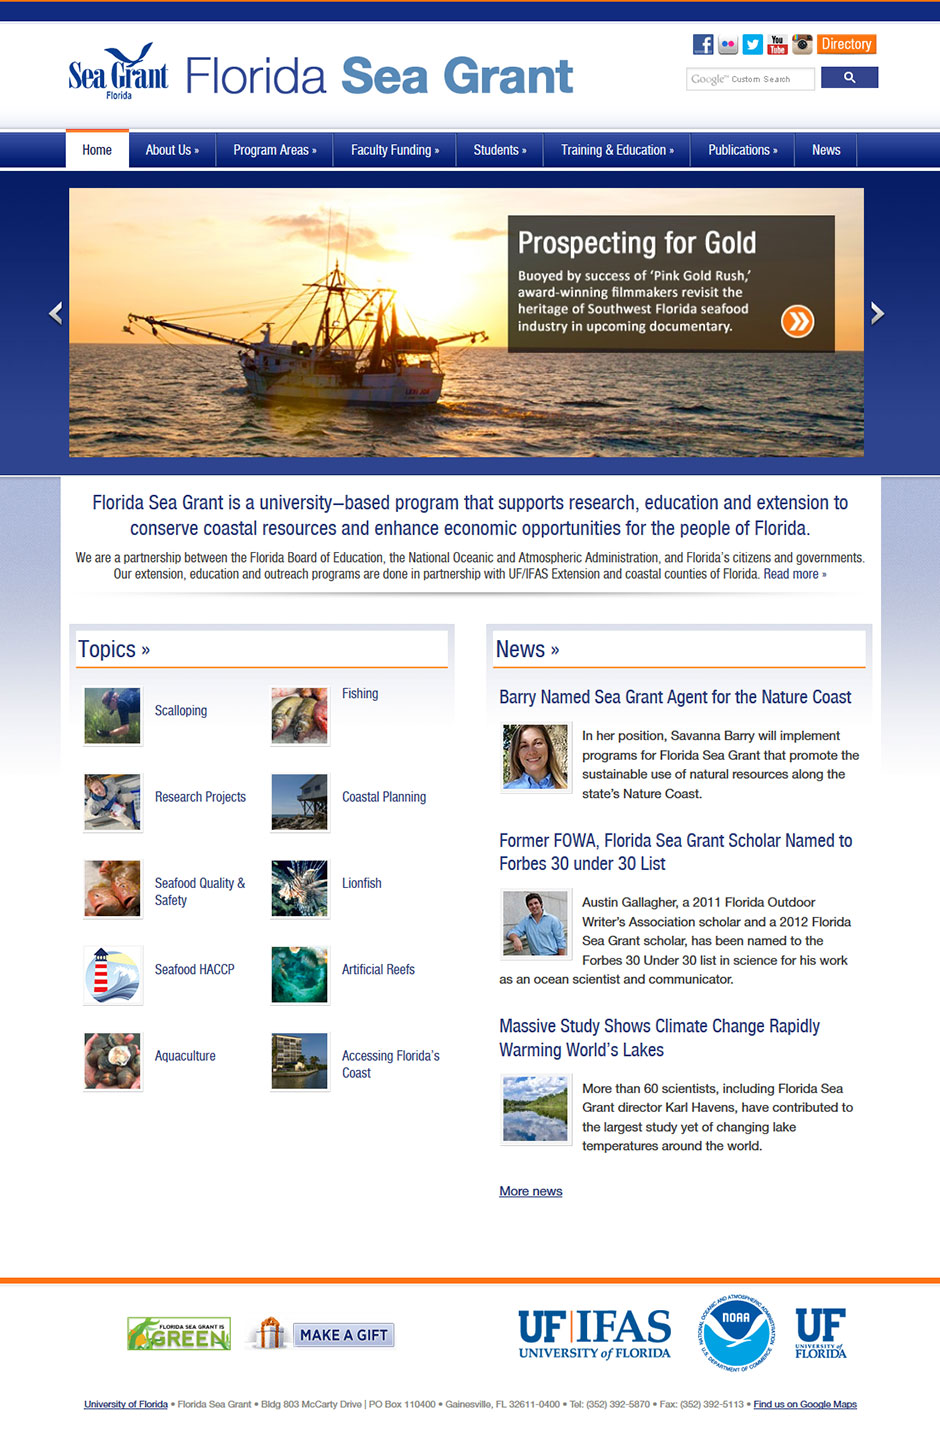 Florida Sea Grant website